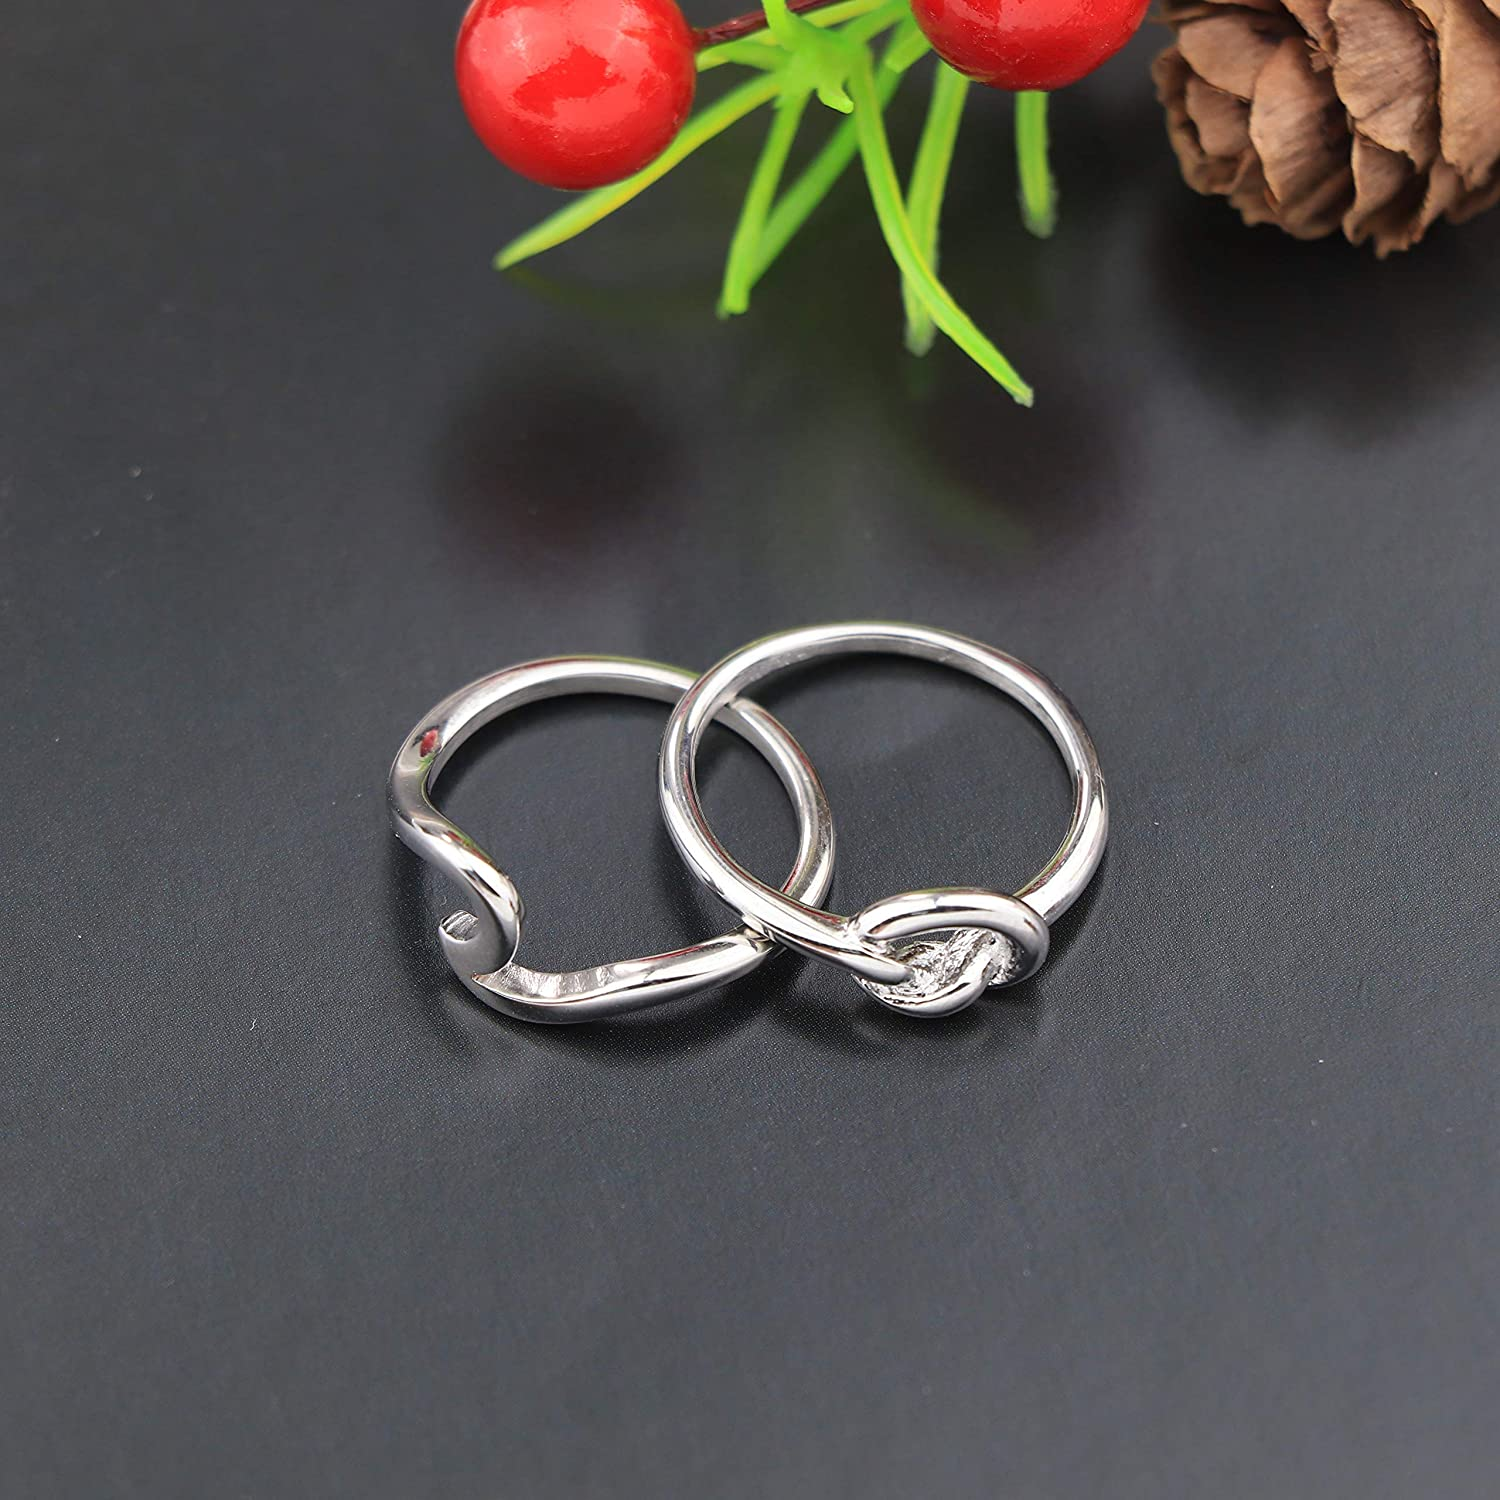 Sllaiss 2Pcs Engagement Wave Band Rings Stainless Steel Love Knot Rings Set Summer Beach Ocean Thumb Rings for Women Fashion Jewelry Size 4-10